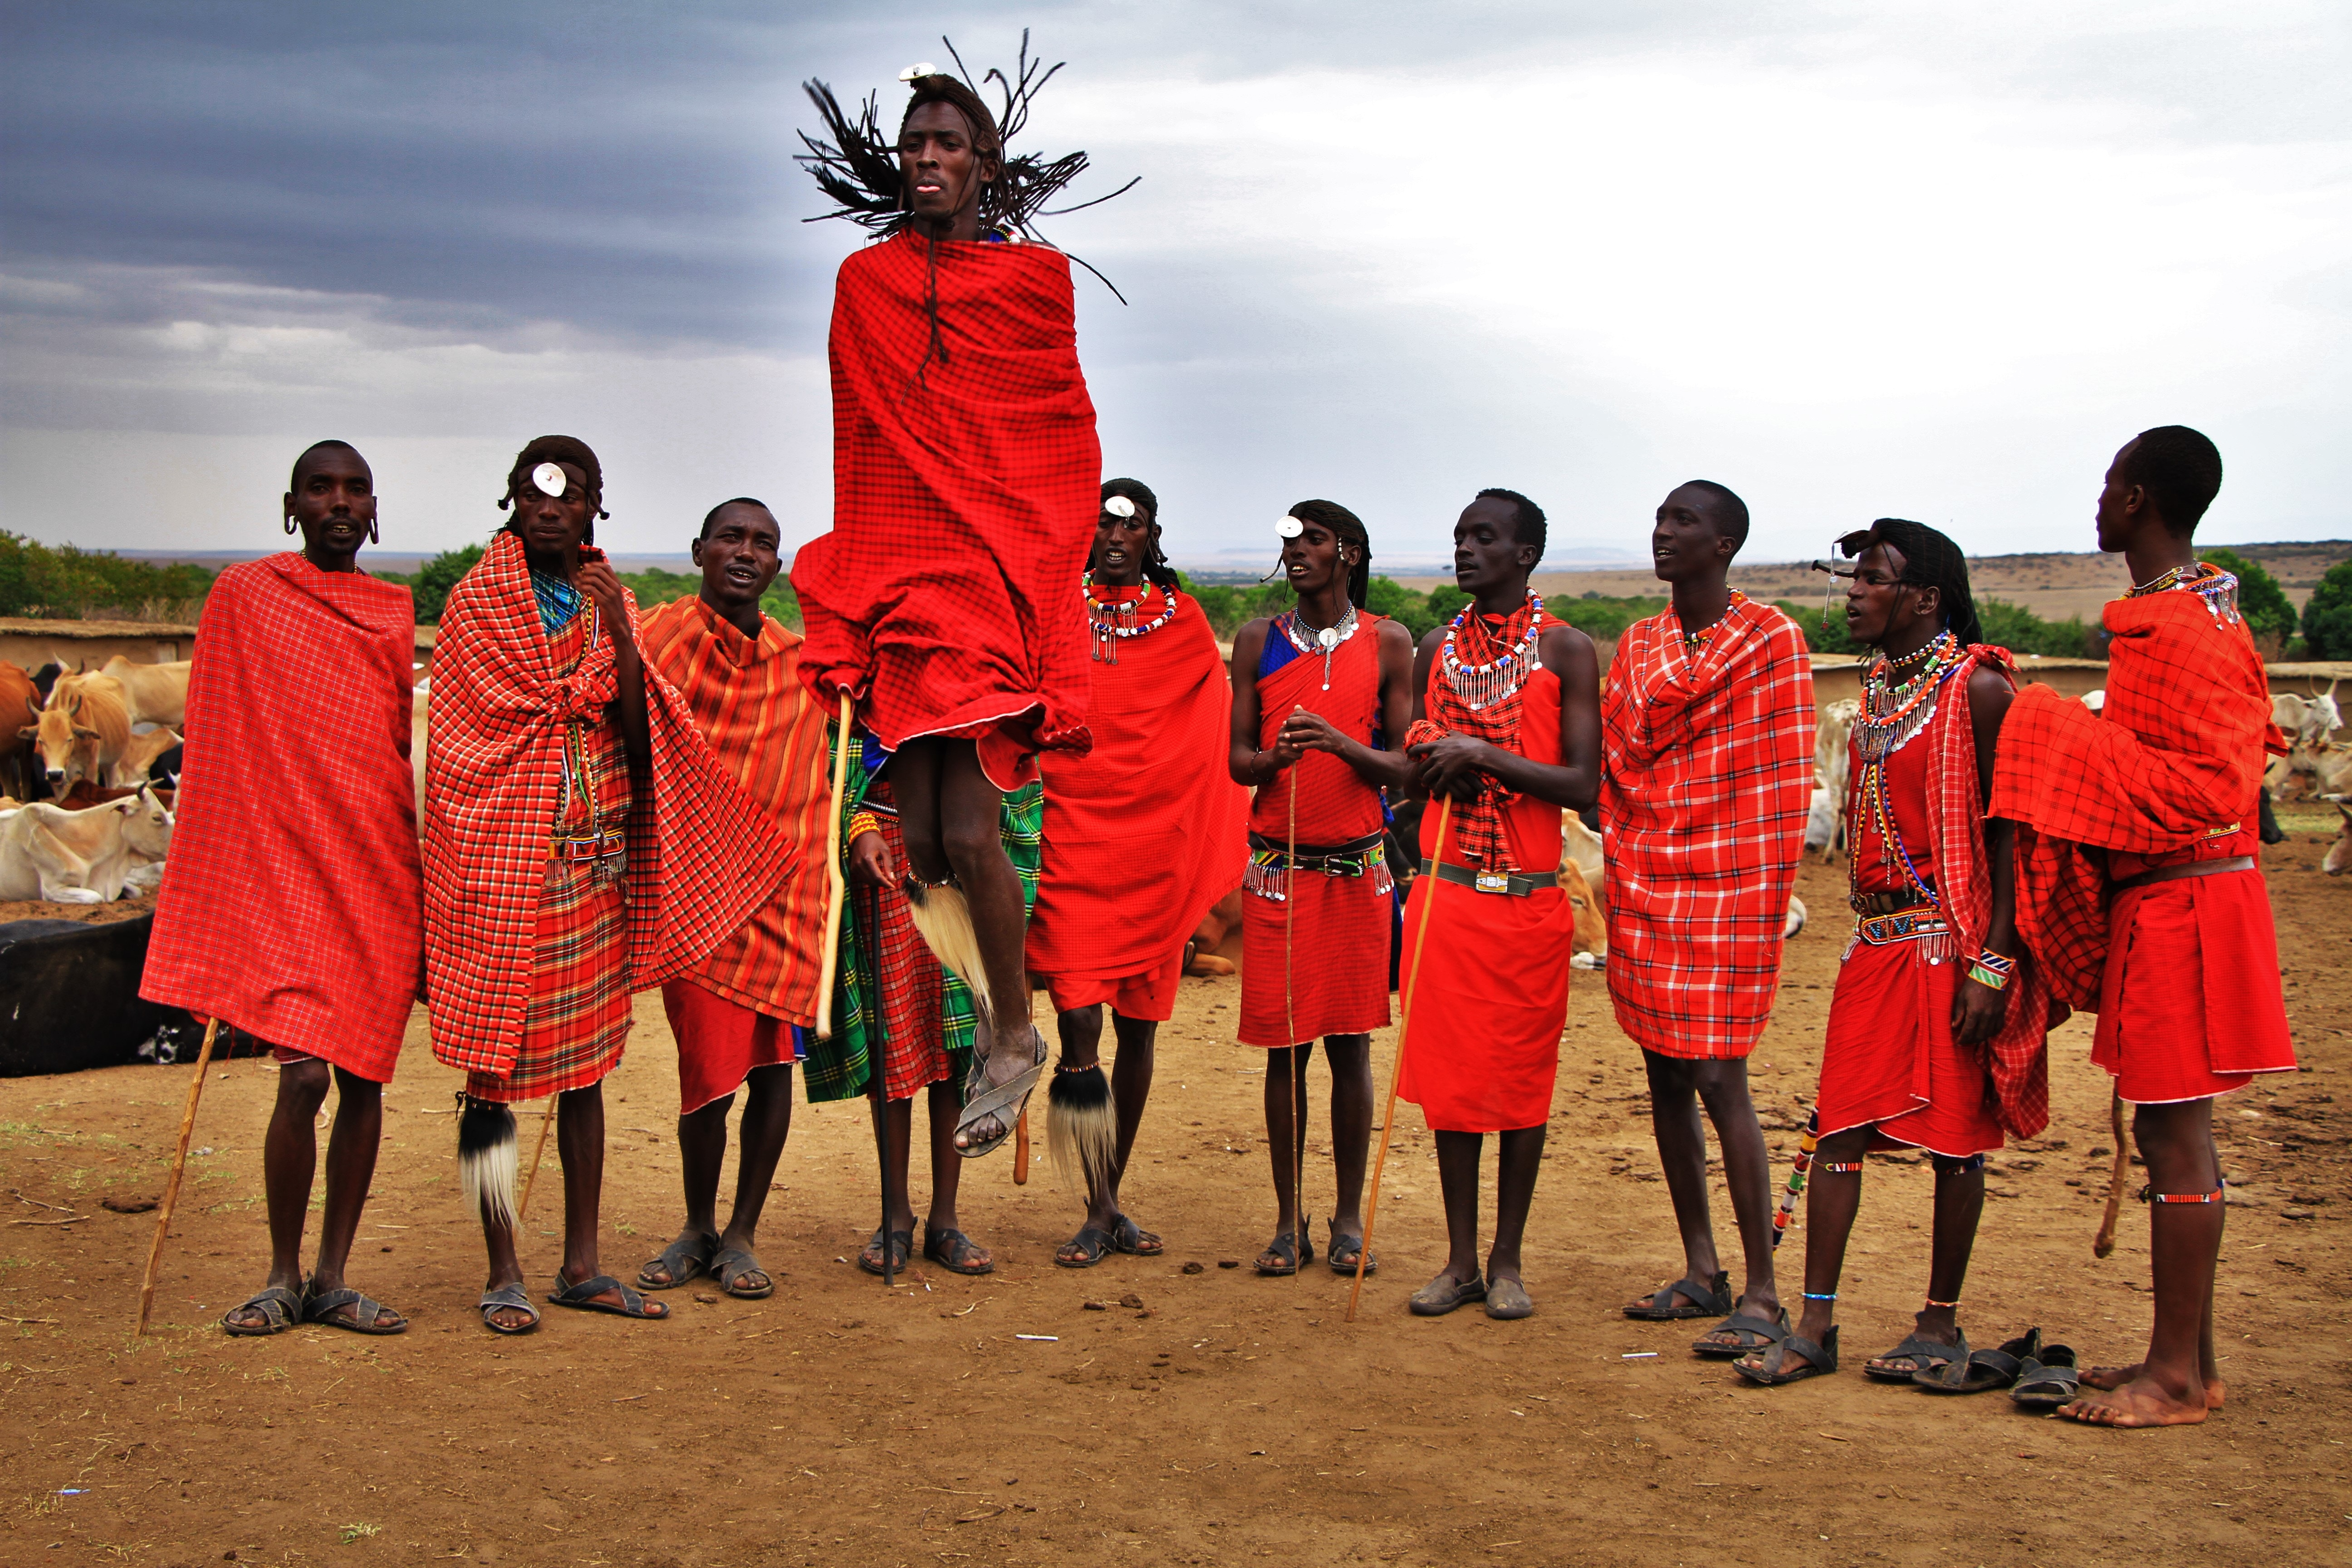 Maasi men dancing in Kenya